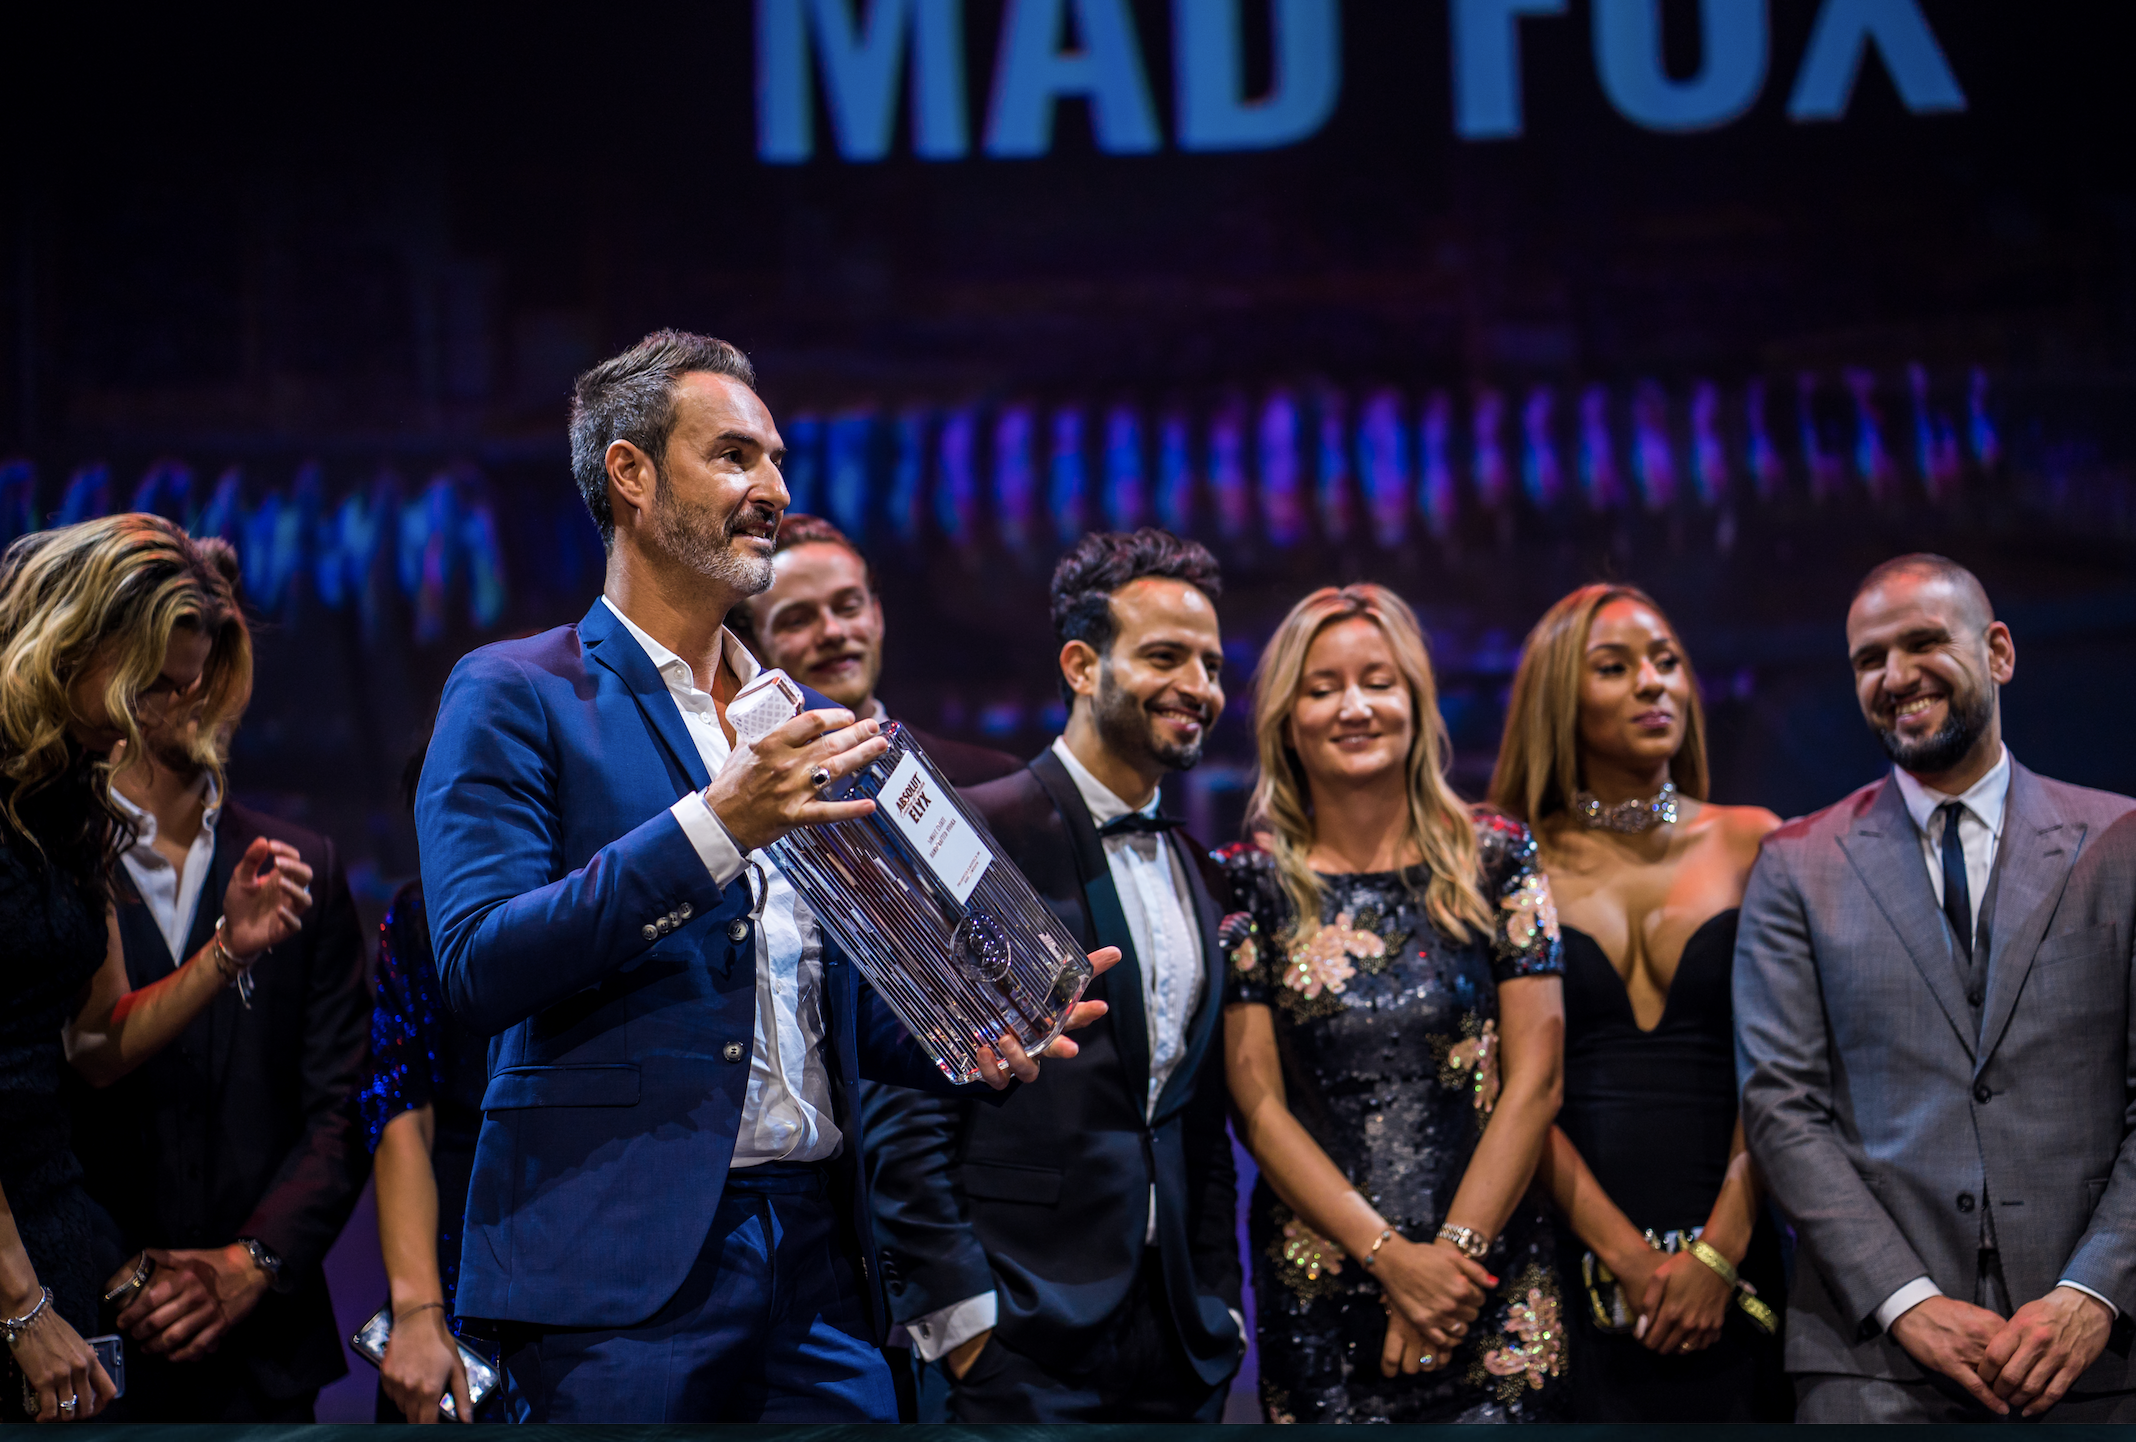 Yossi Eliyahoo, Liran Wizman and the Mad Fox team collecting the Best Night Club Award